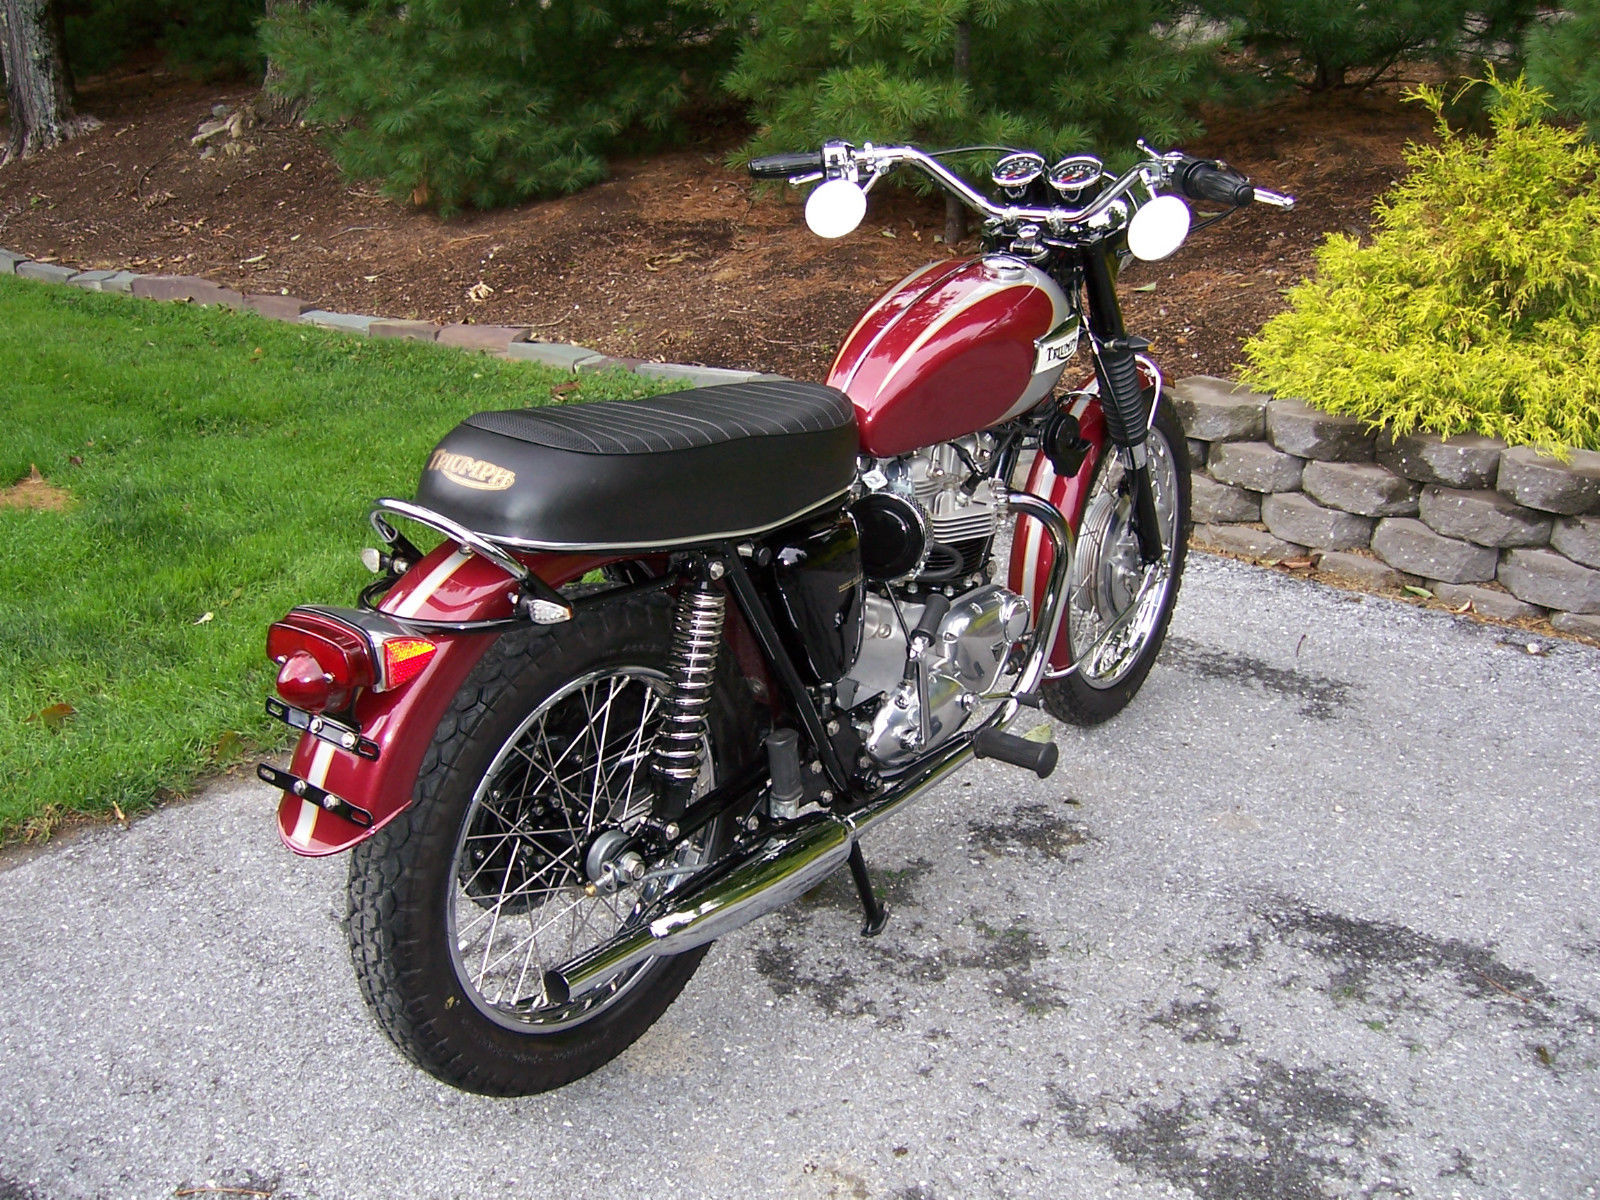 Triumph Bonneville 650 1970 Restored Classic Motorcycles At Wiring Harness For 1971 Motorcycle